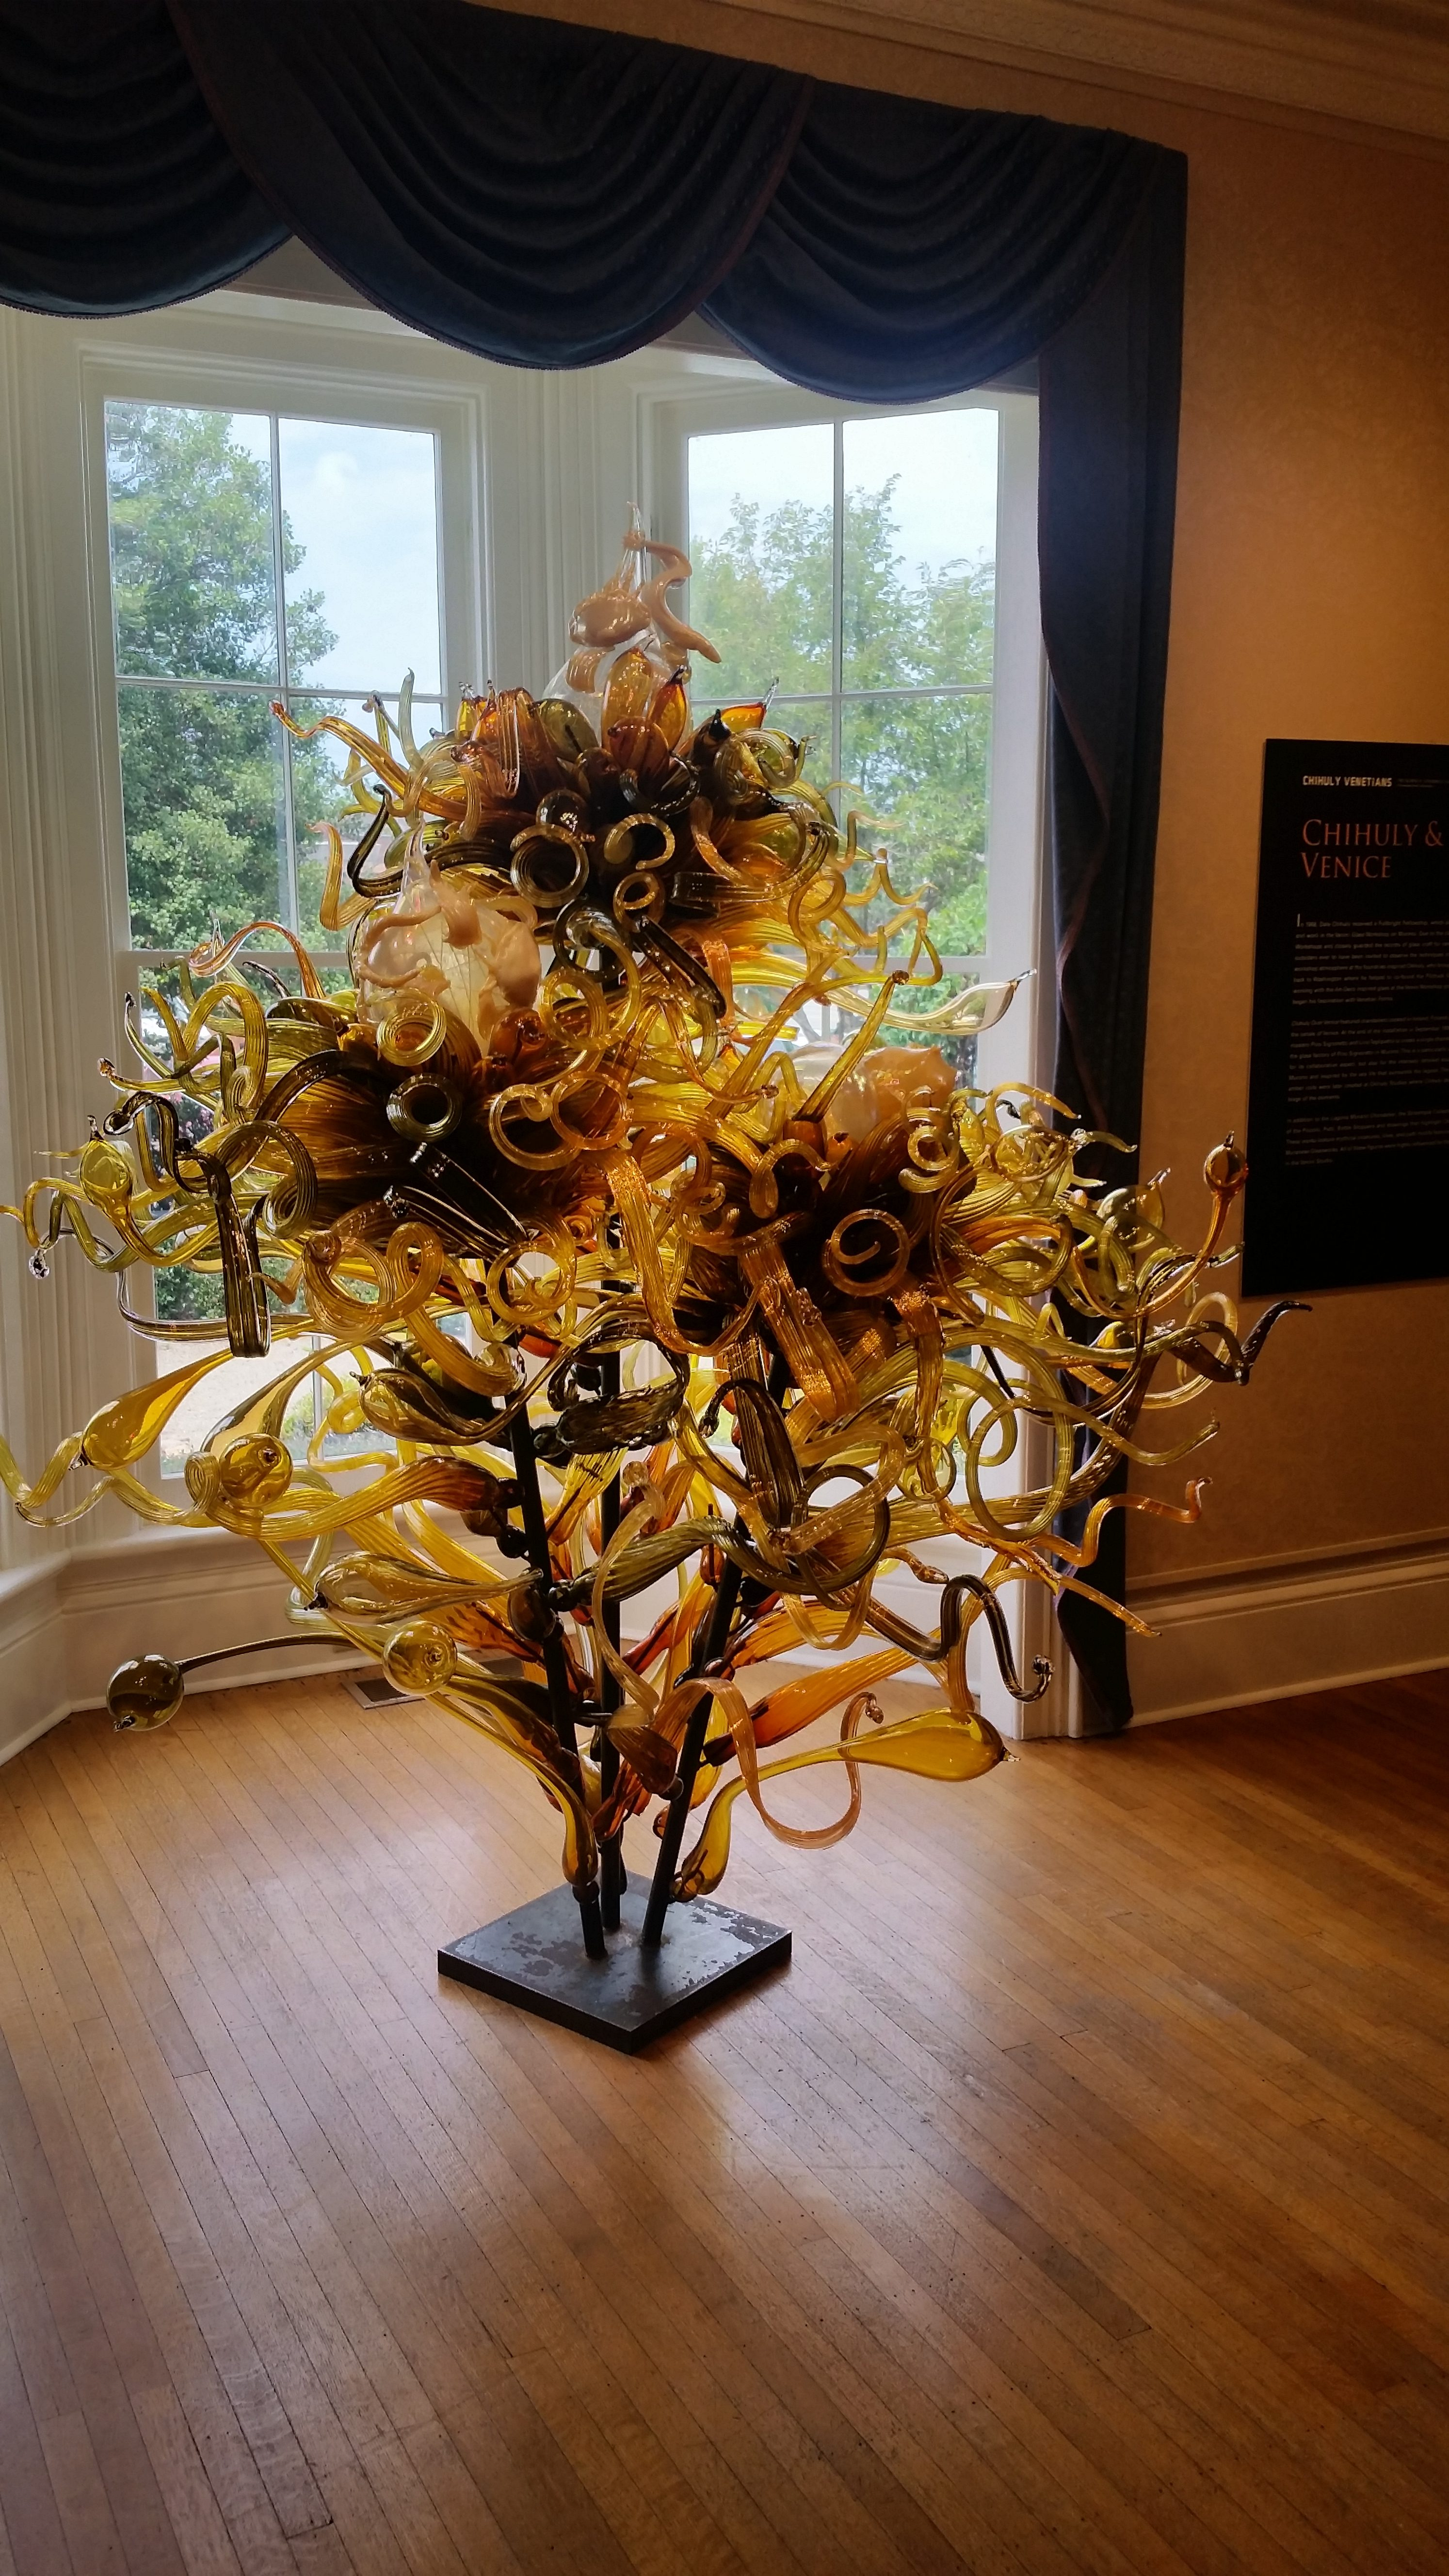 Chihuly Exhibit @ Alamance Arts 2016